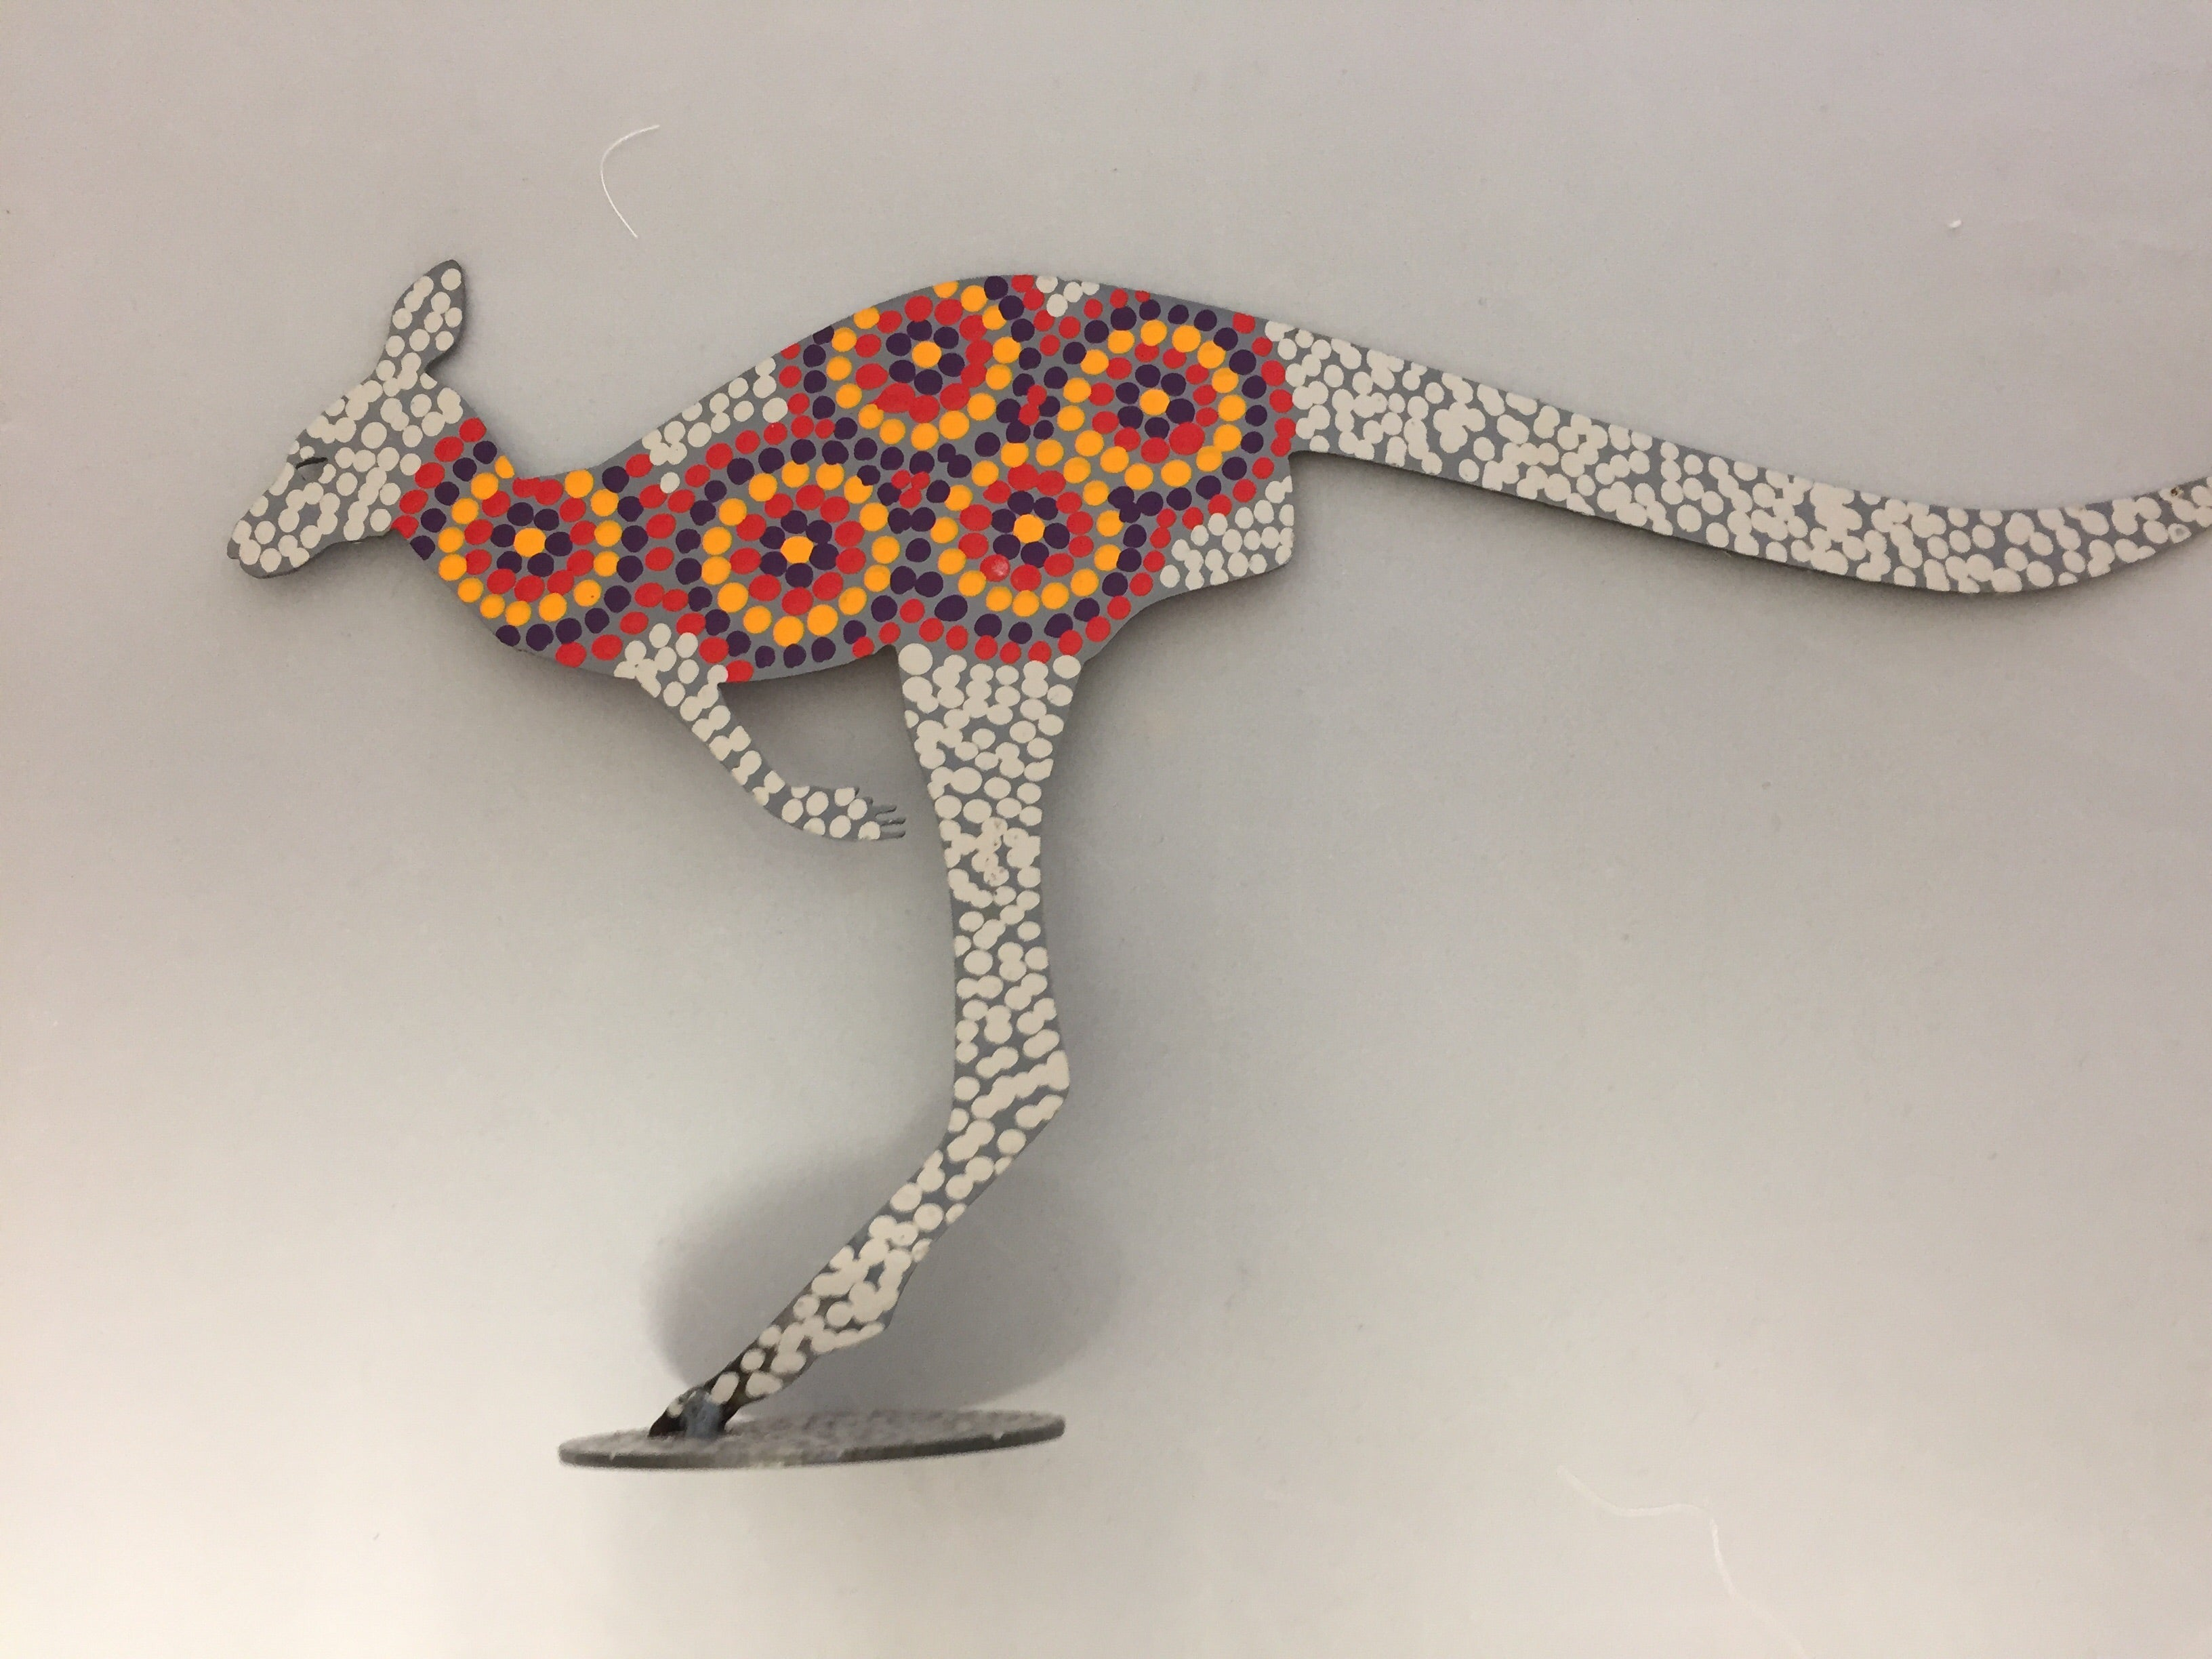 Kangaroo Steel Art